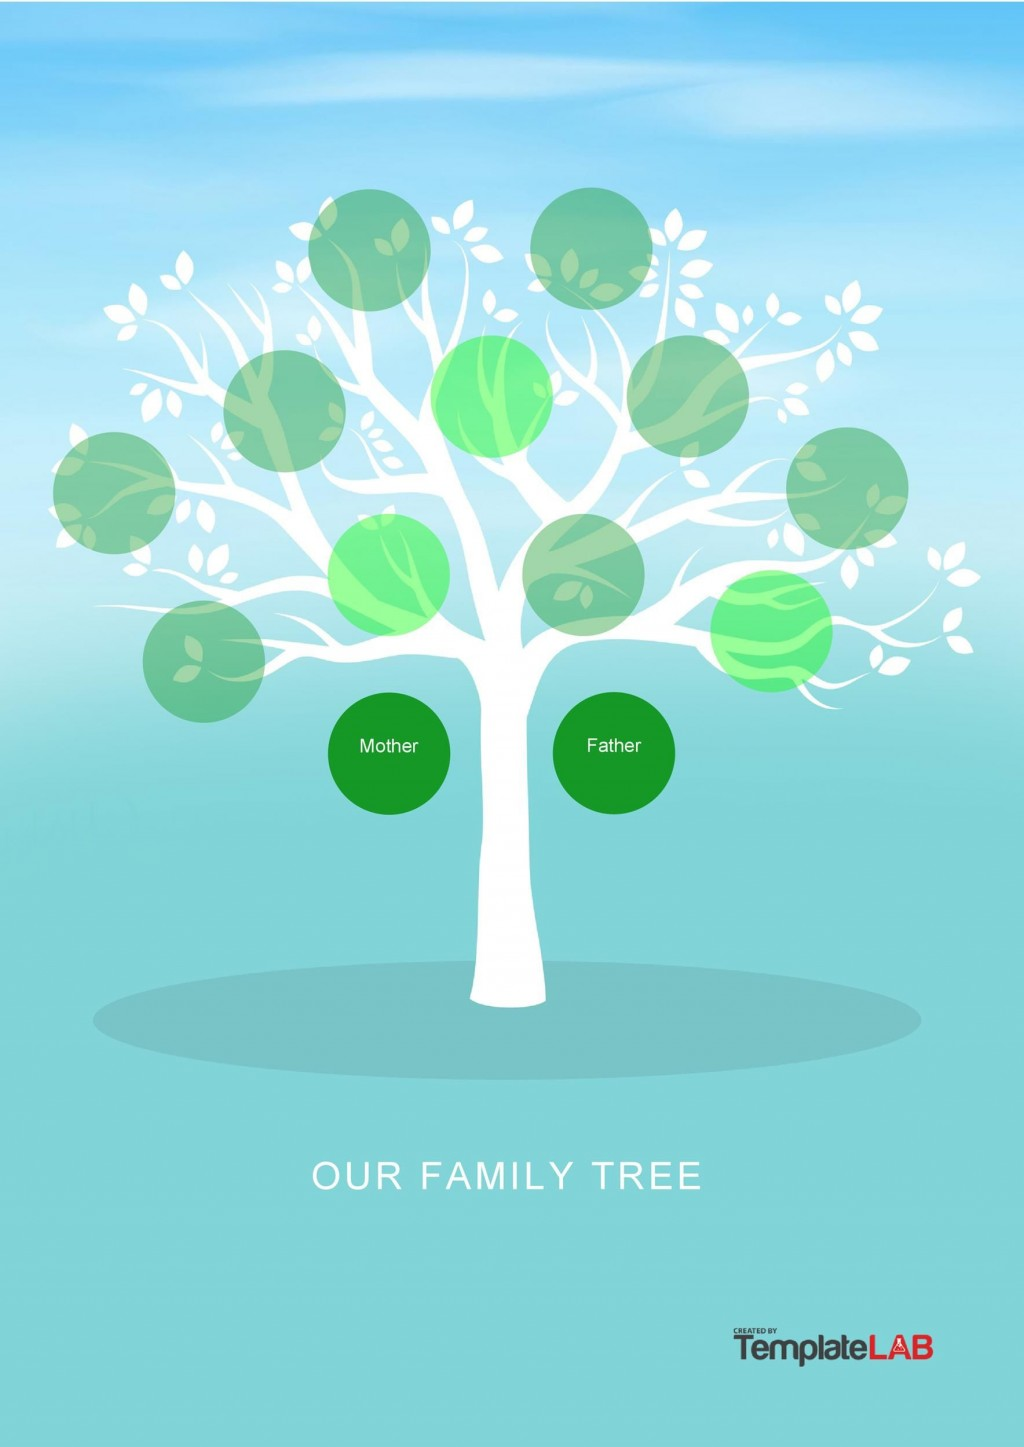 004 Top Family Tree Template Word Free Download Idea Large